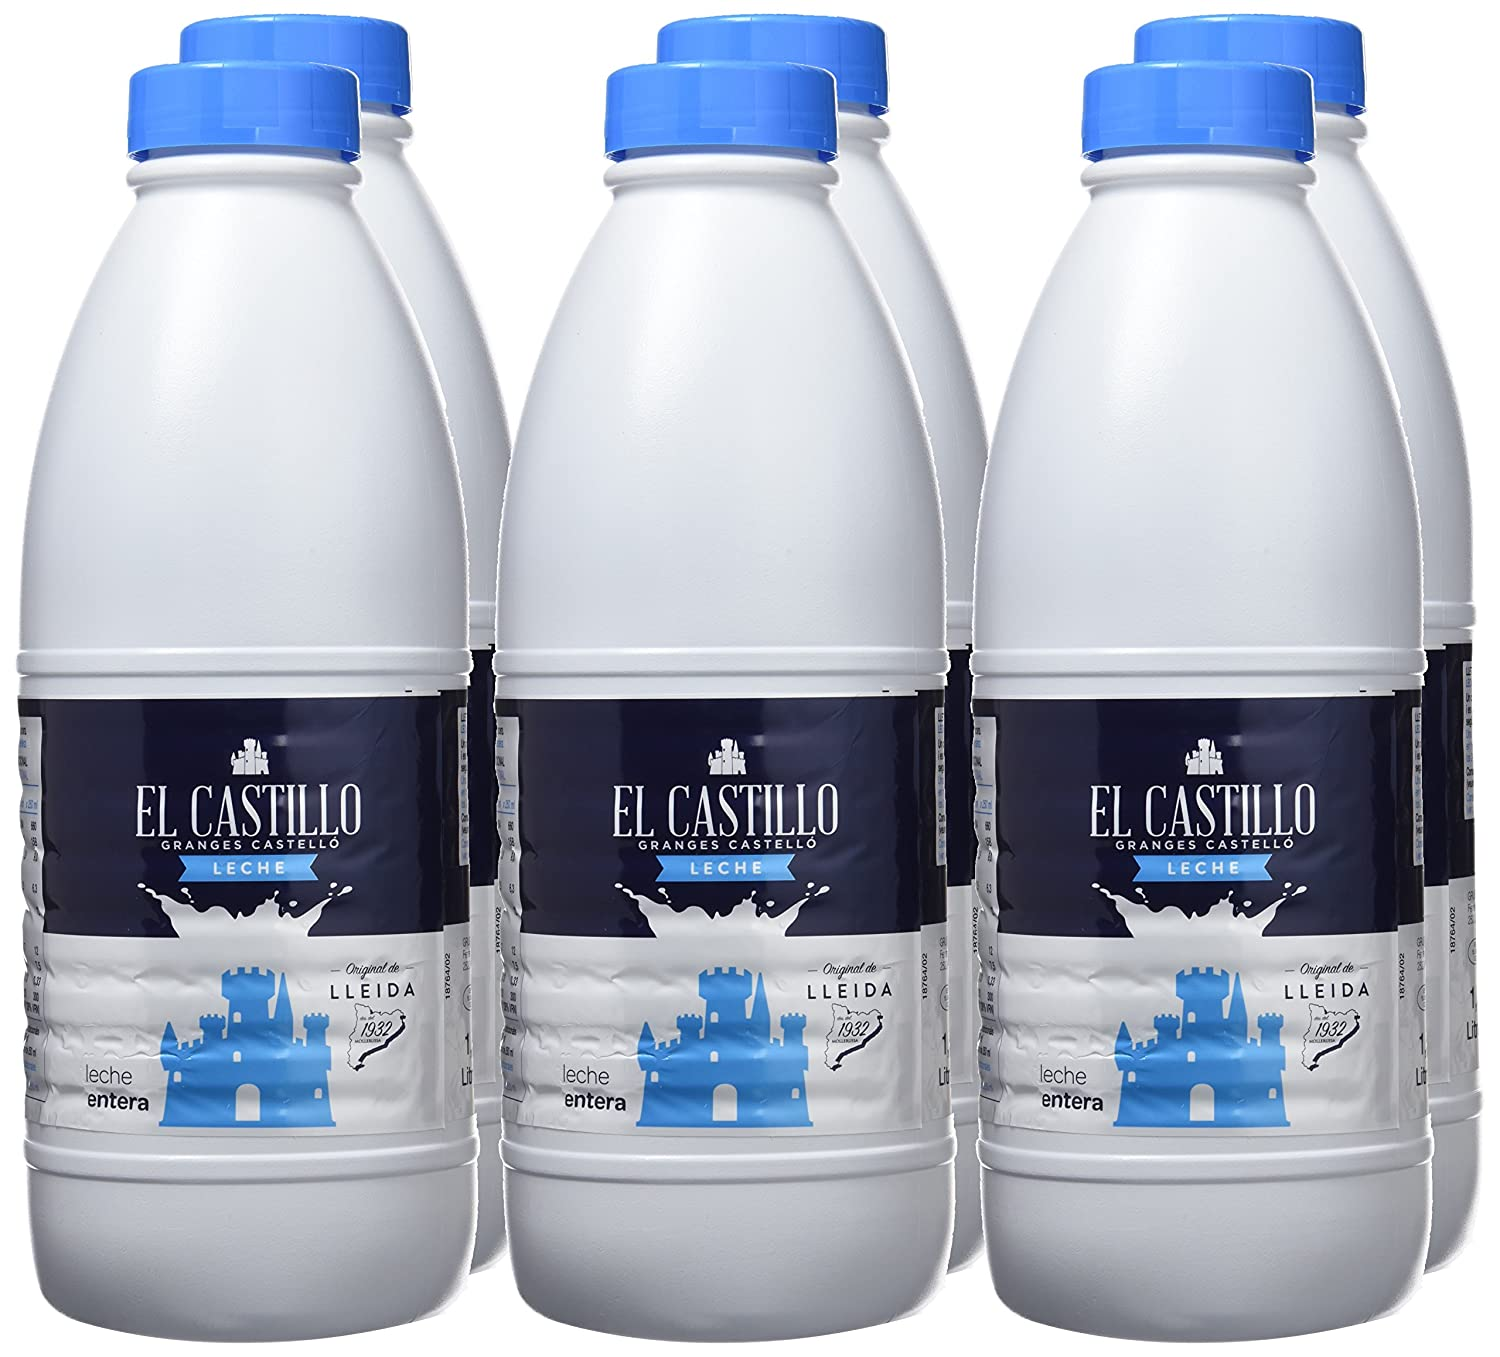 El Castillo Leche Entera - Paquete de 6 x 1500 ml - Total 9000 ml: Amazon.es: Amazon Pantry